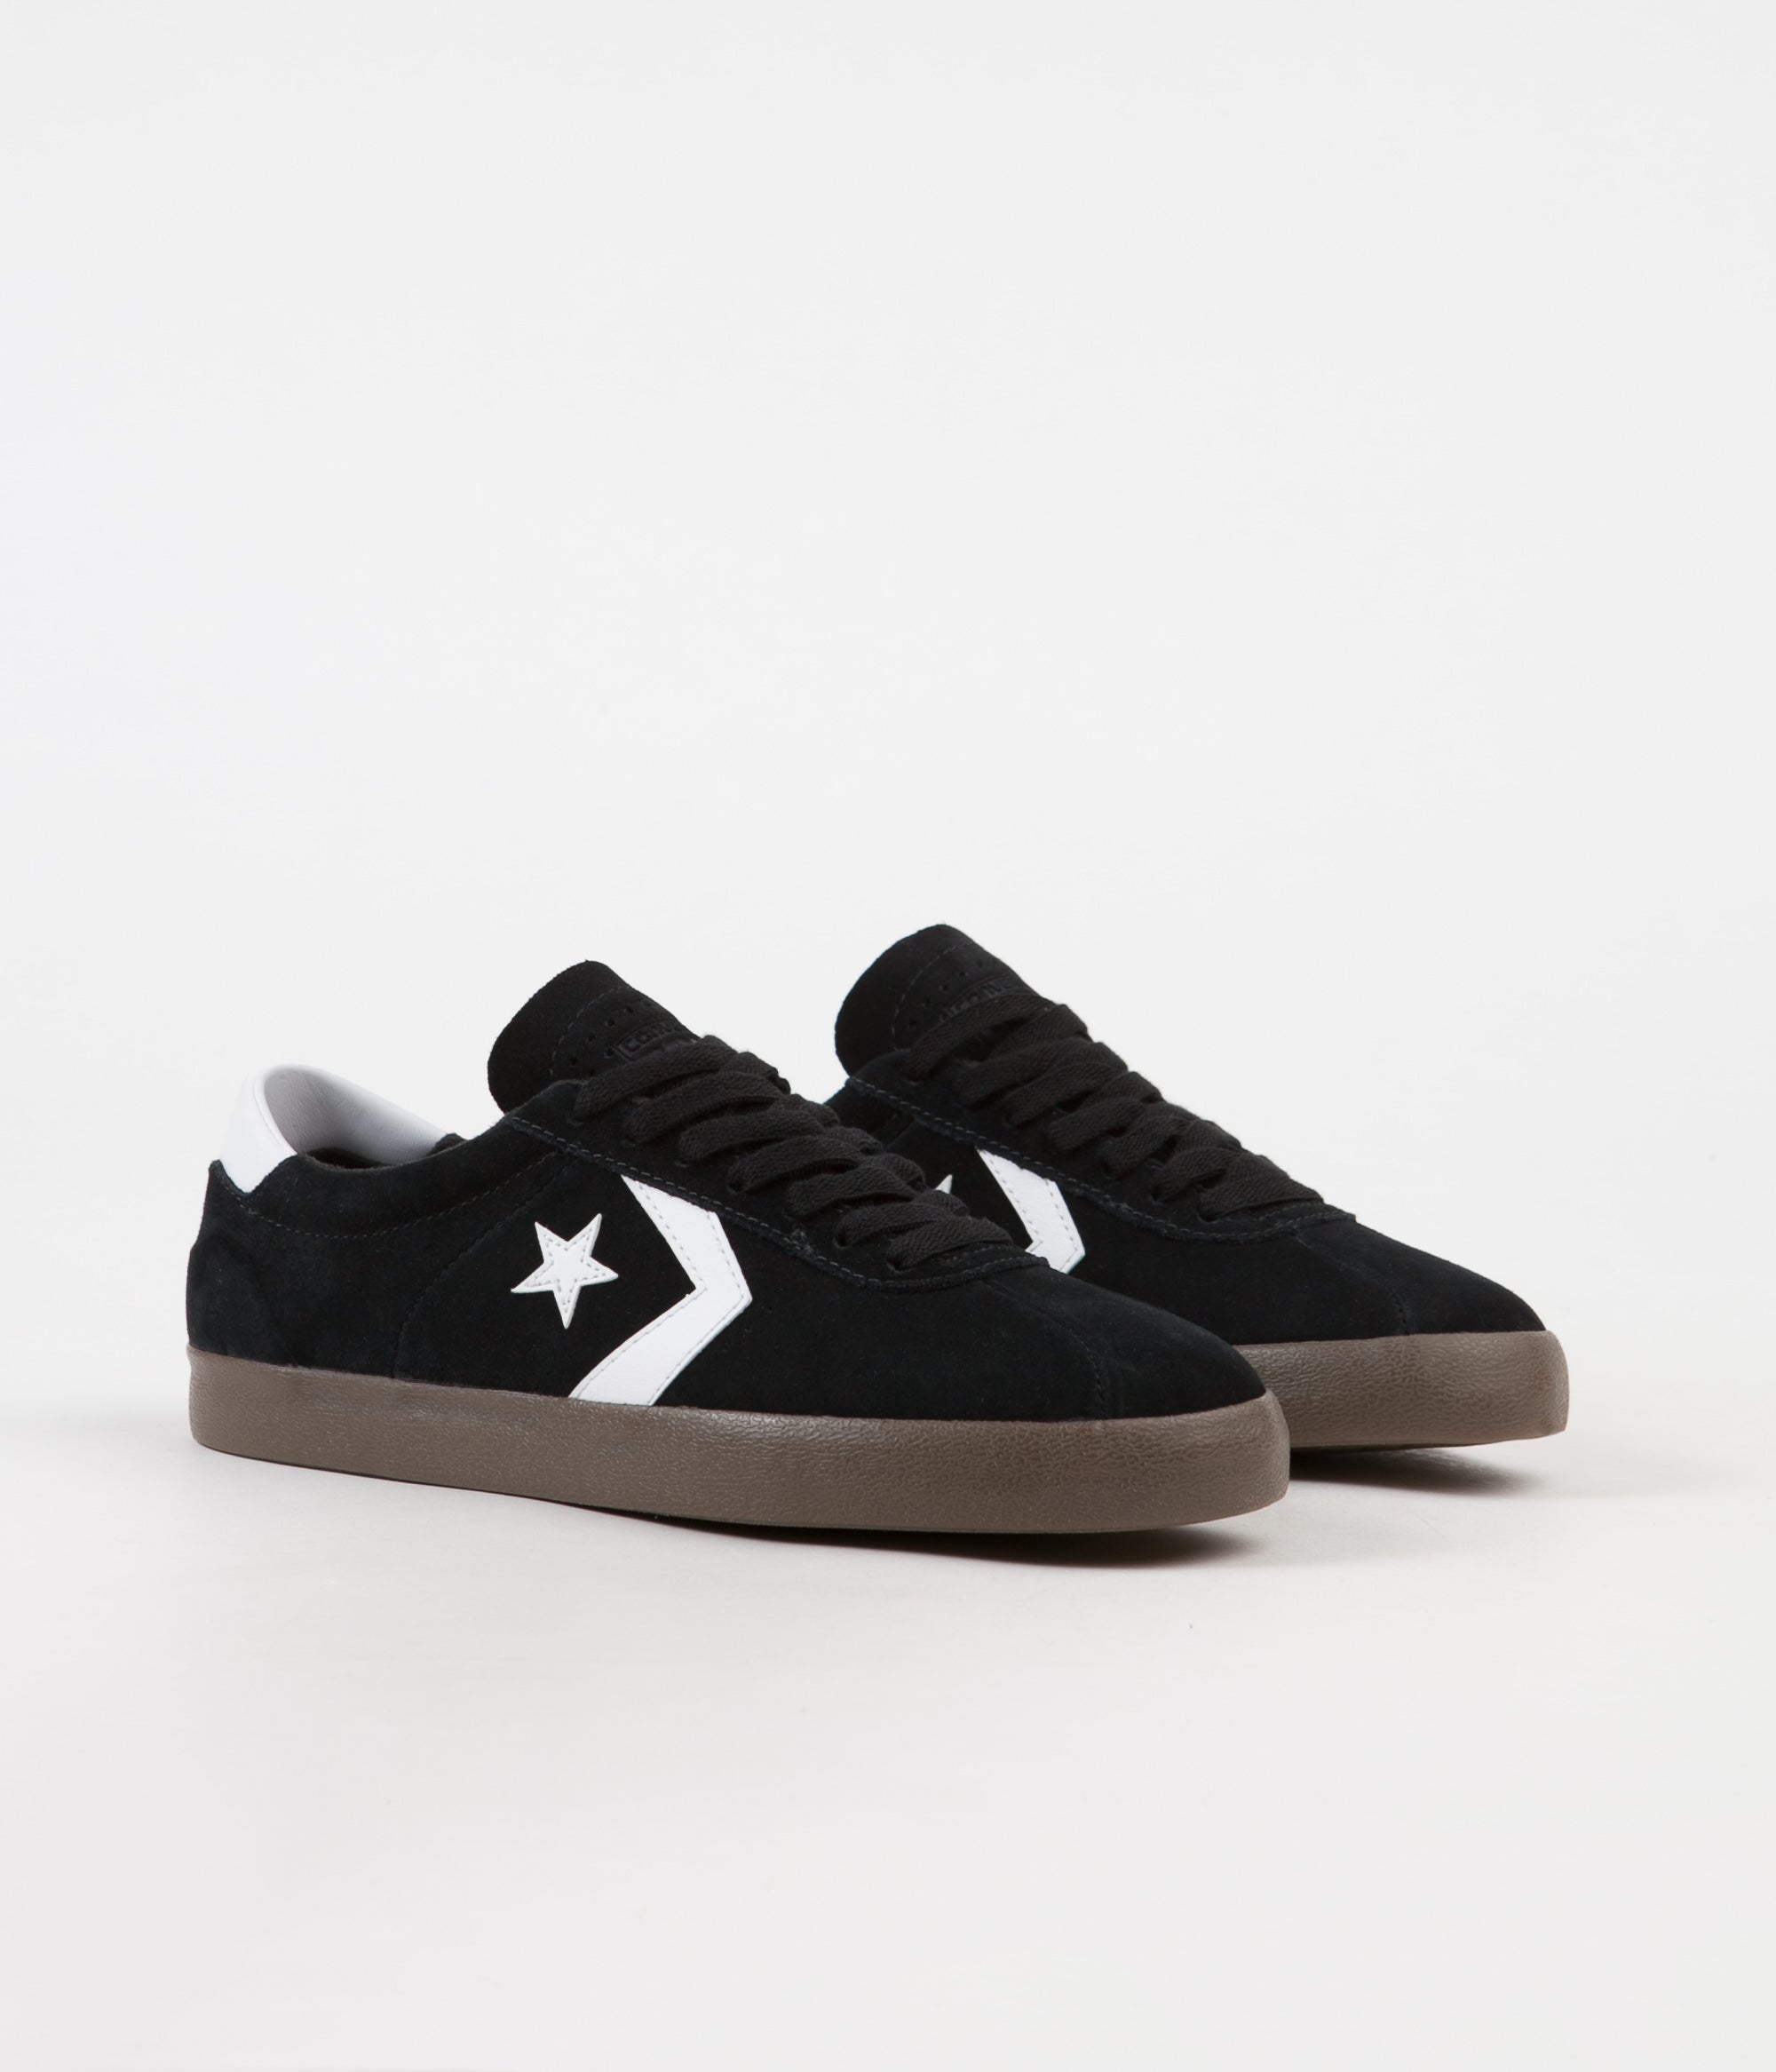 a370eebf0f4360 ... real converse breakpoint pro ox shoes black white gum 0da65 cf5b7